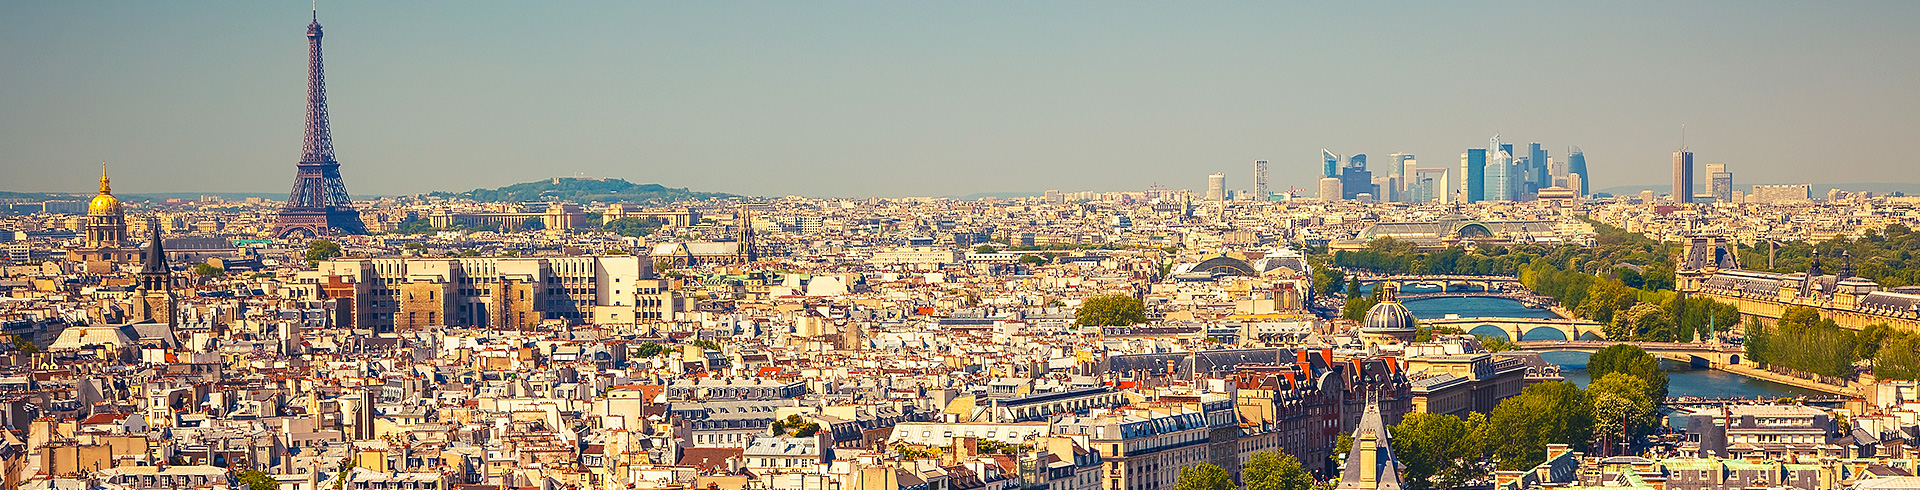 Discounted flight tickets to Paris - IFlyFirstClass